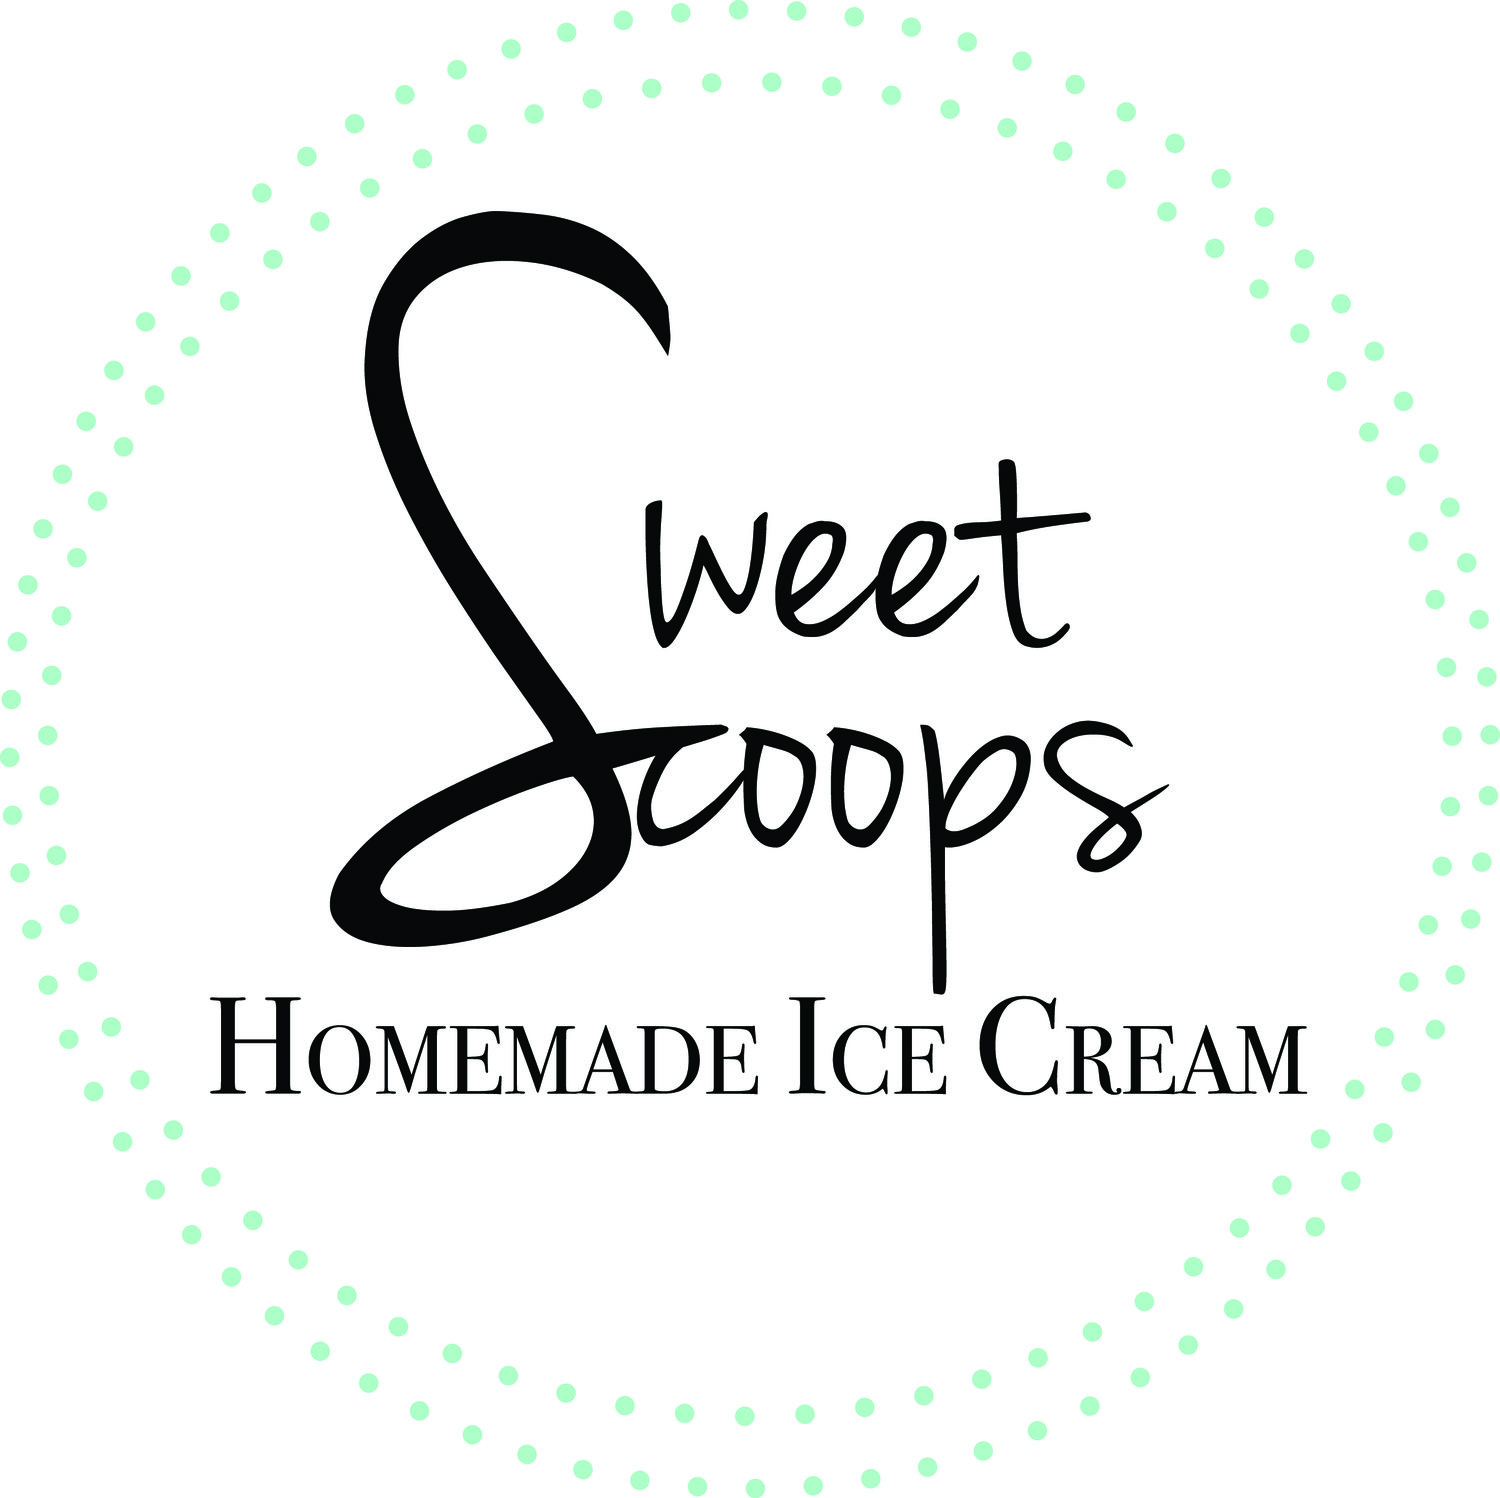 Sweet Scoops Homemade Ice Cream